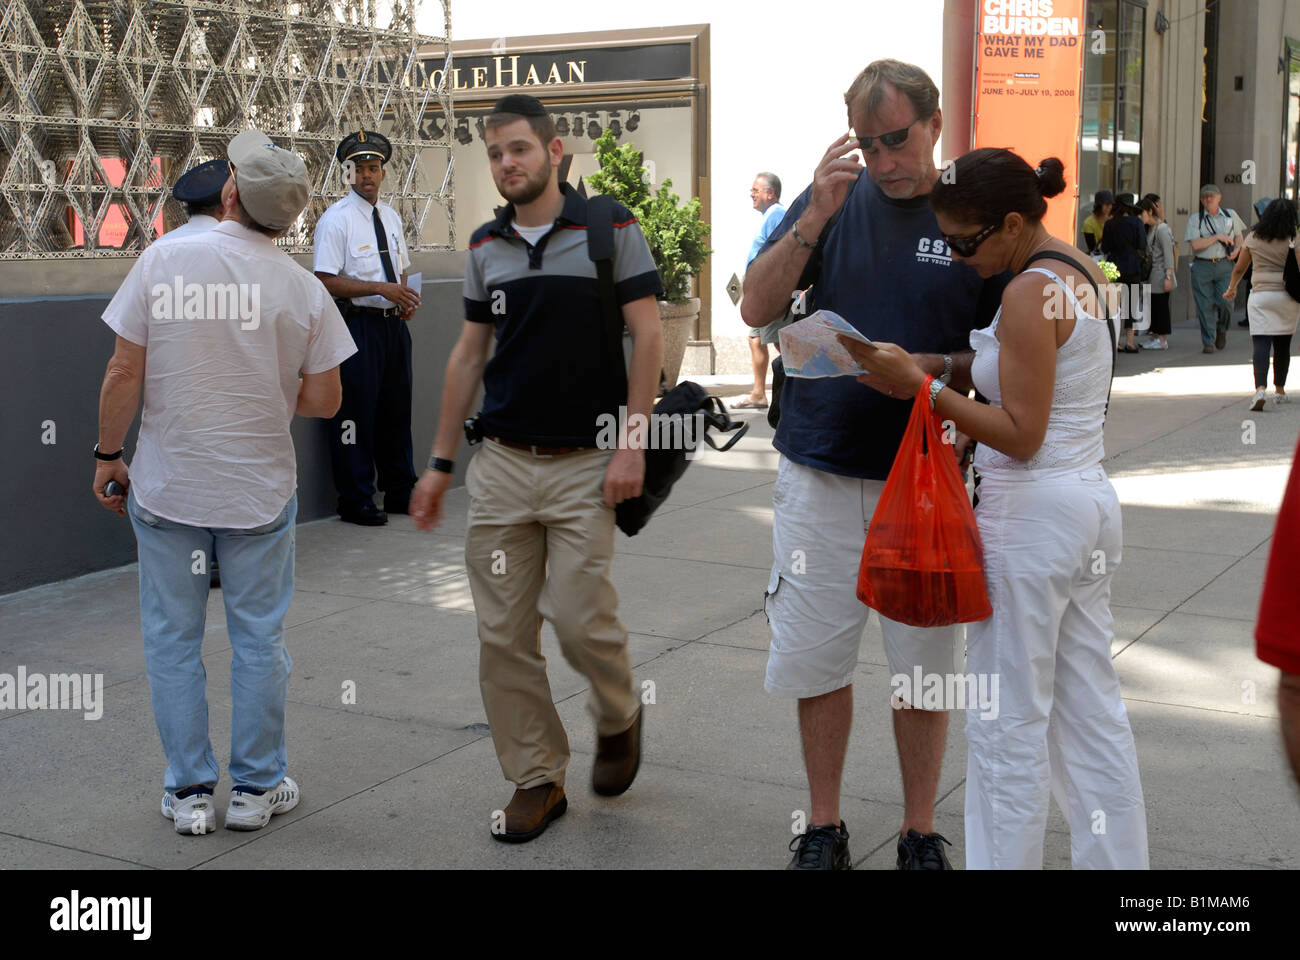 Map Of New York Rockefeller Center.Tourists Consult A Map In Front Of Rockefeller Center On Fifth